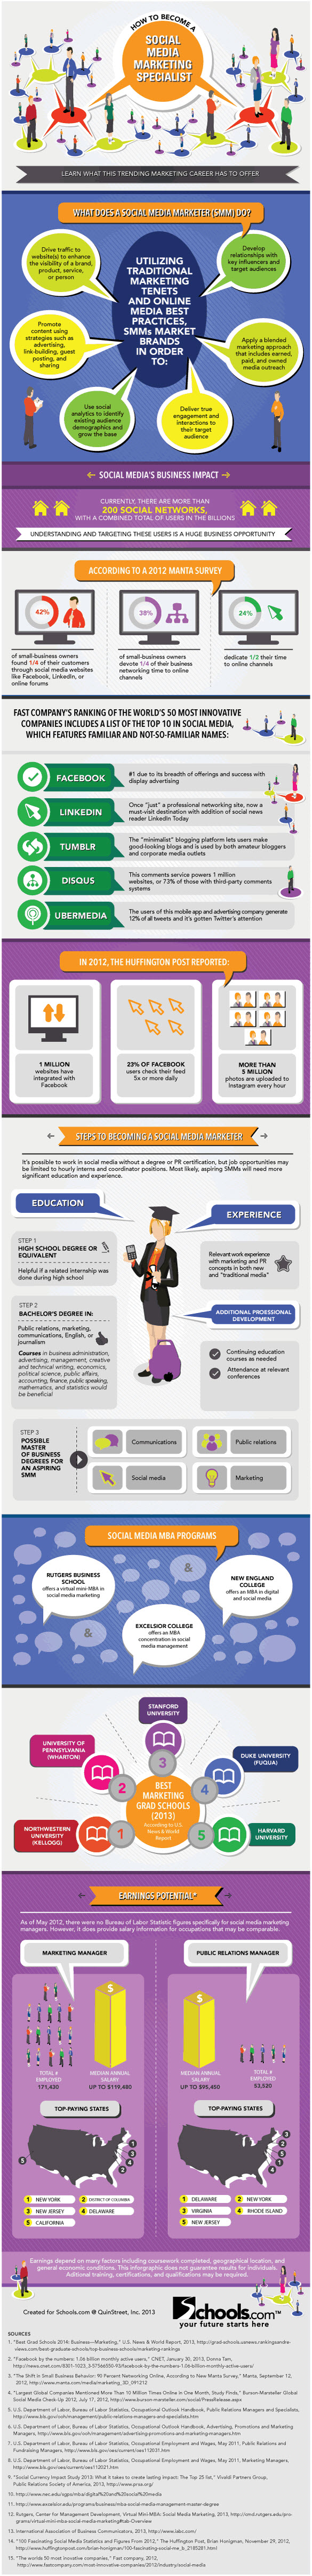 How to Become a Social Media Marketing Expert - Infographic